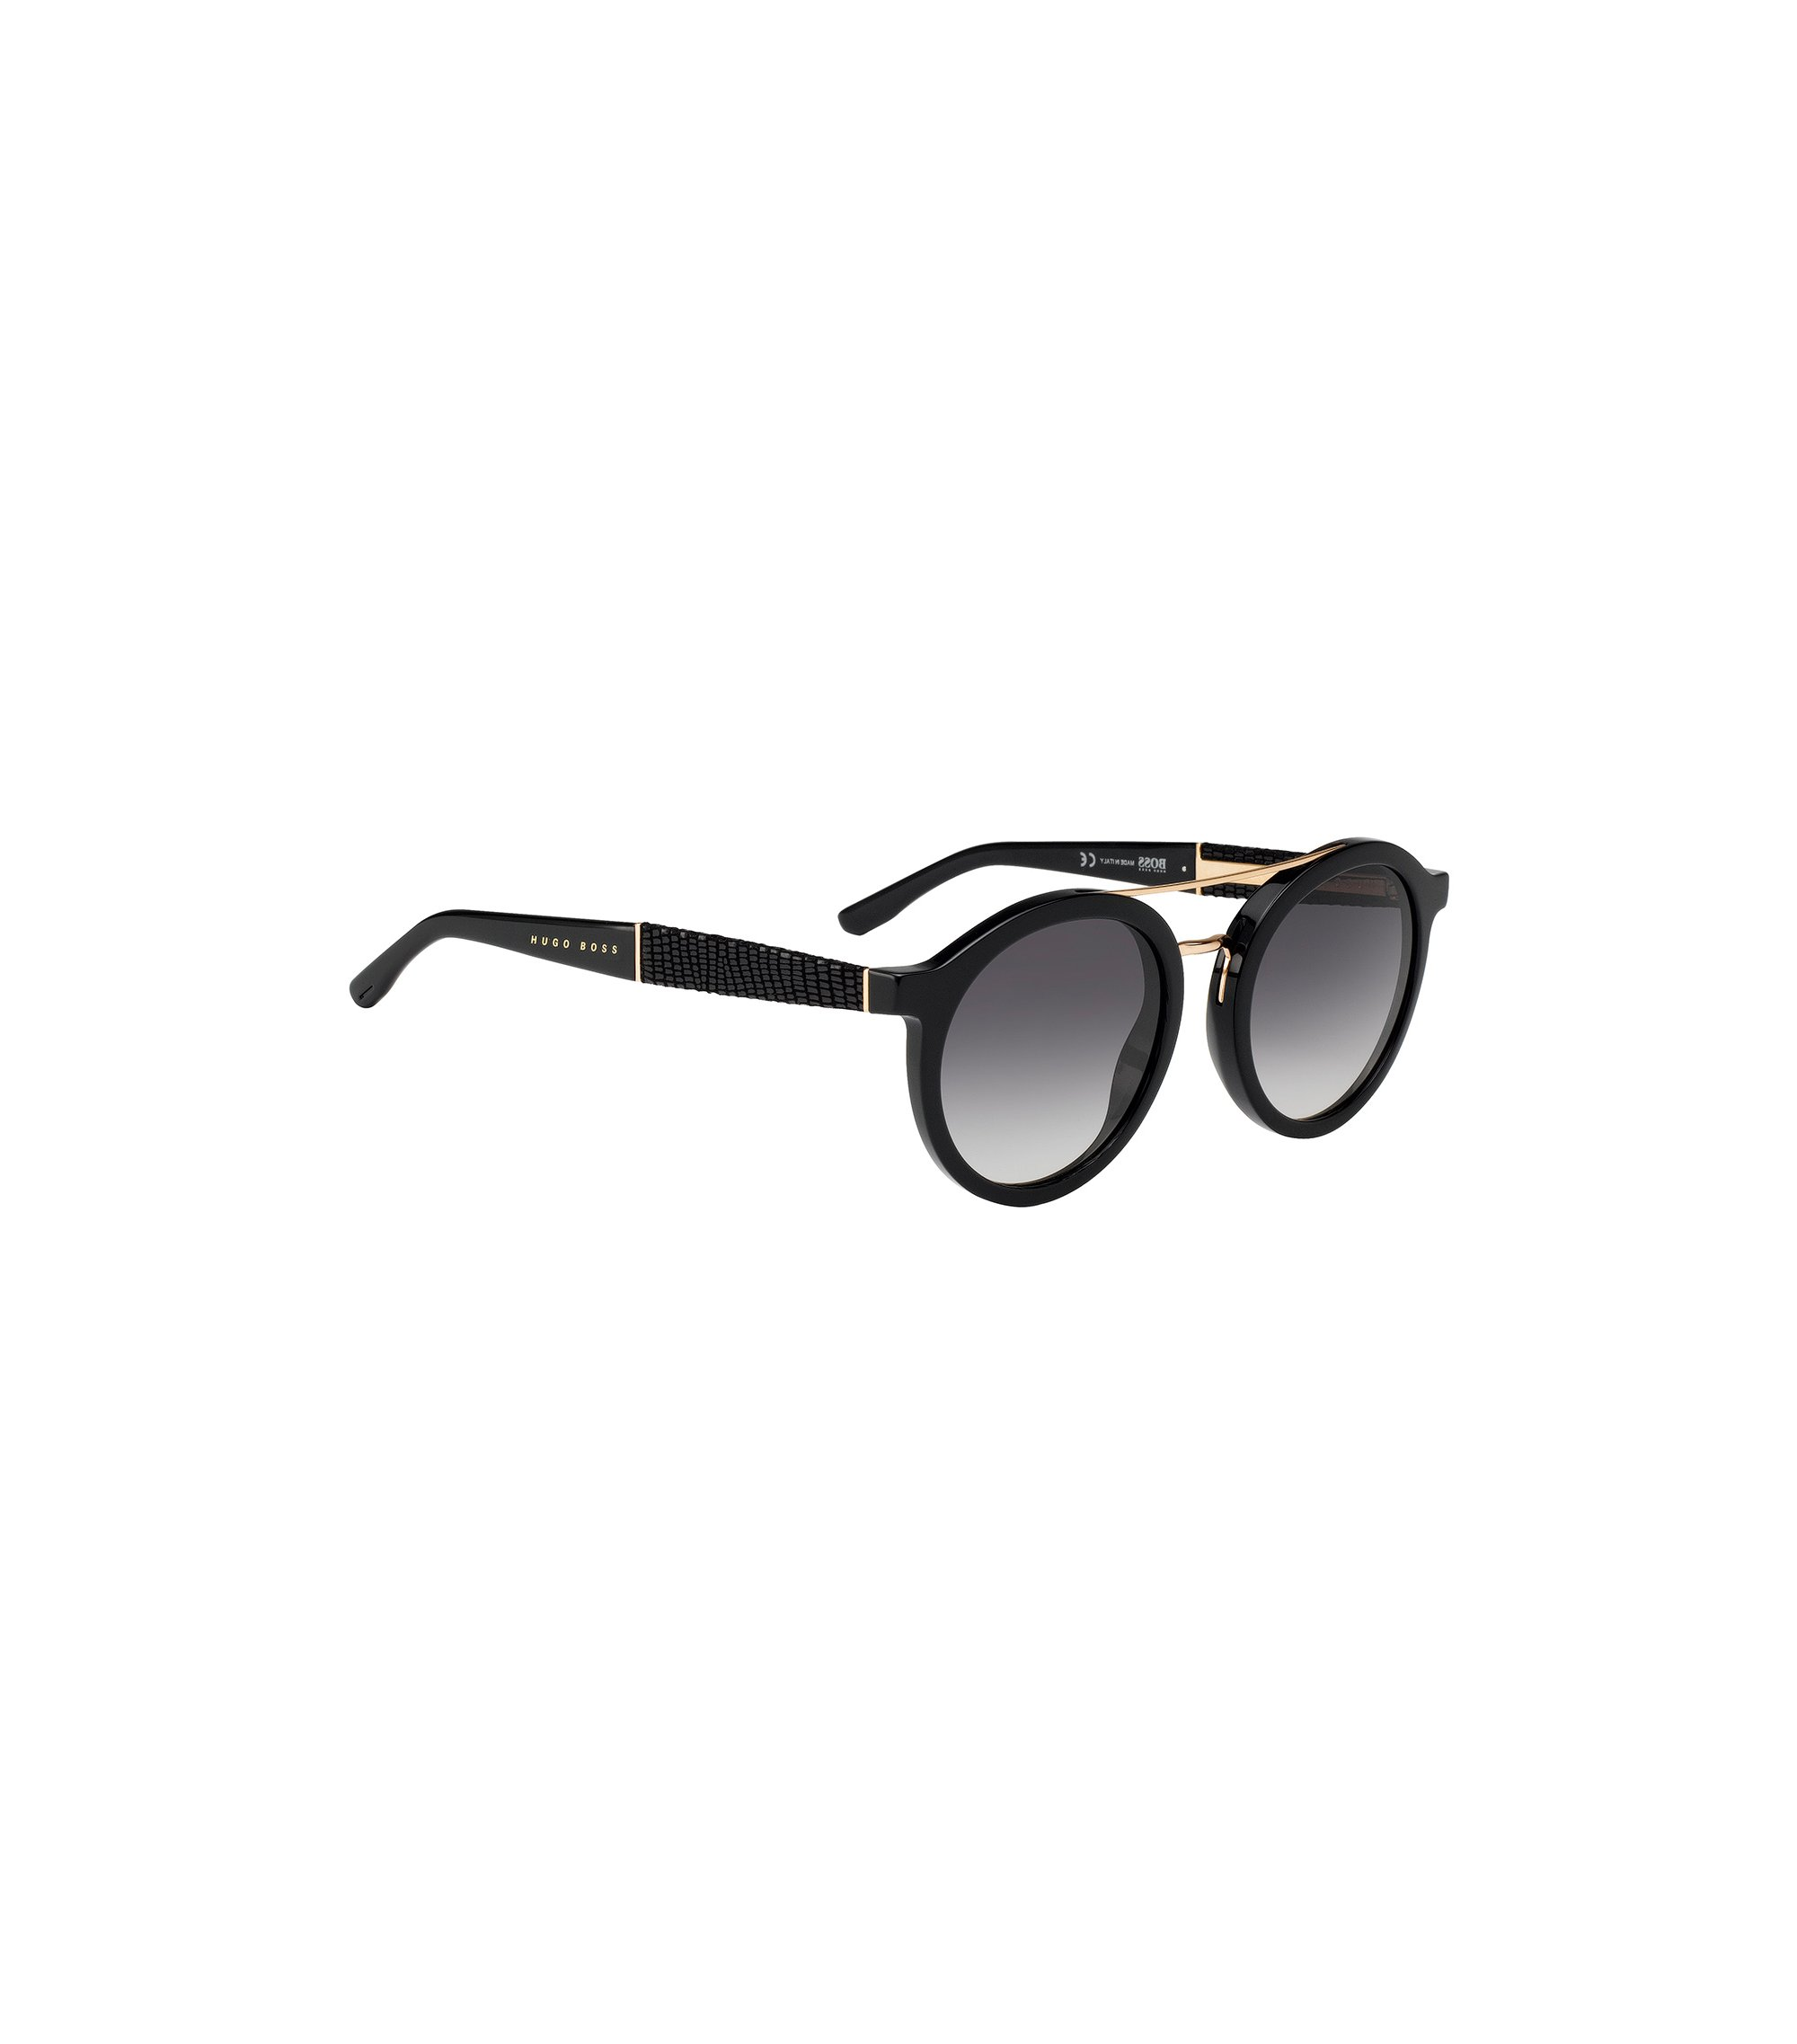 Round Gradient Lens Acetate Leather Sunglasses | BOSS 0853S, Assorted-Pre-Pack